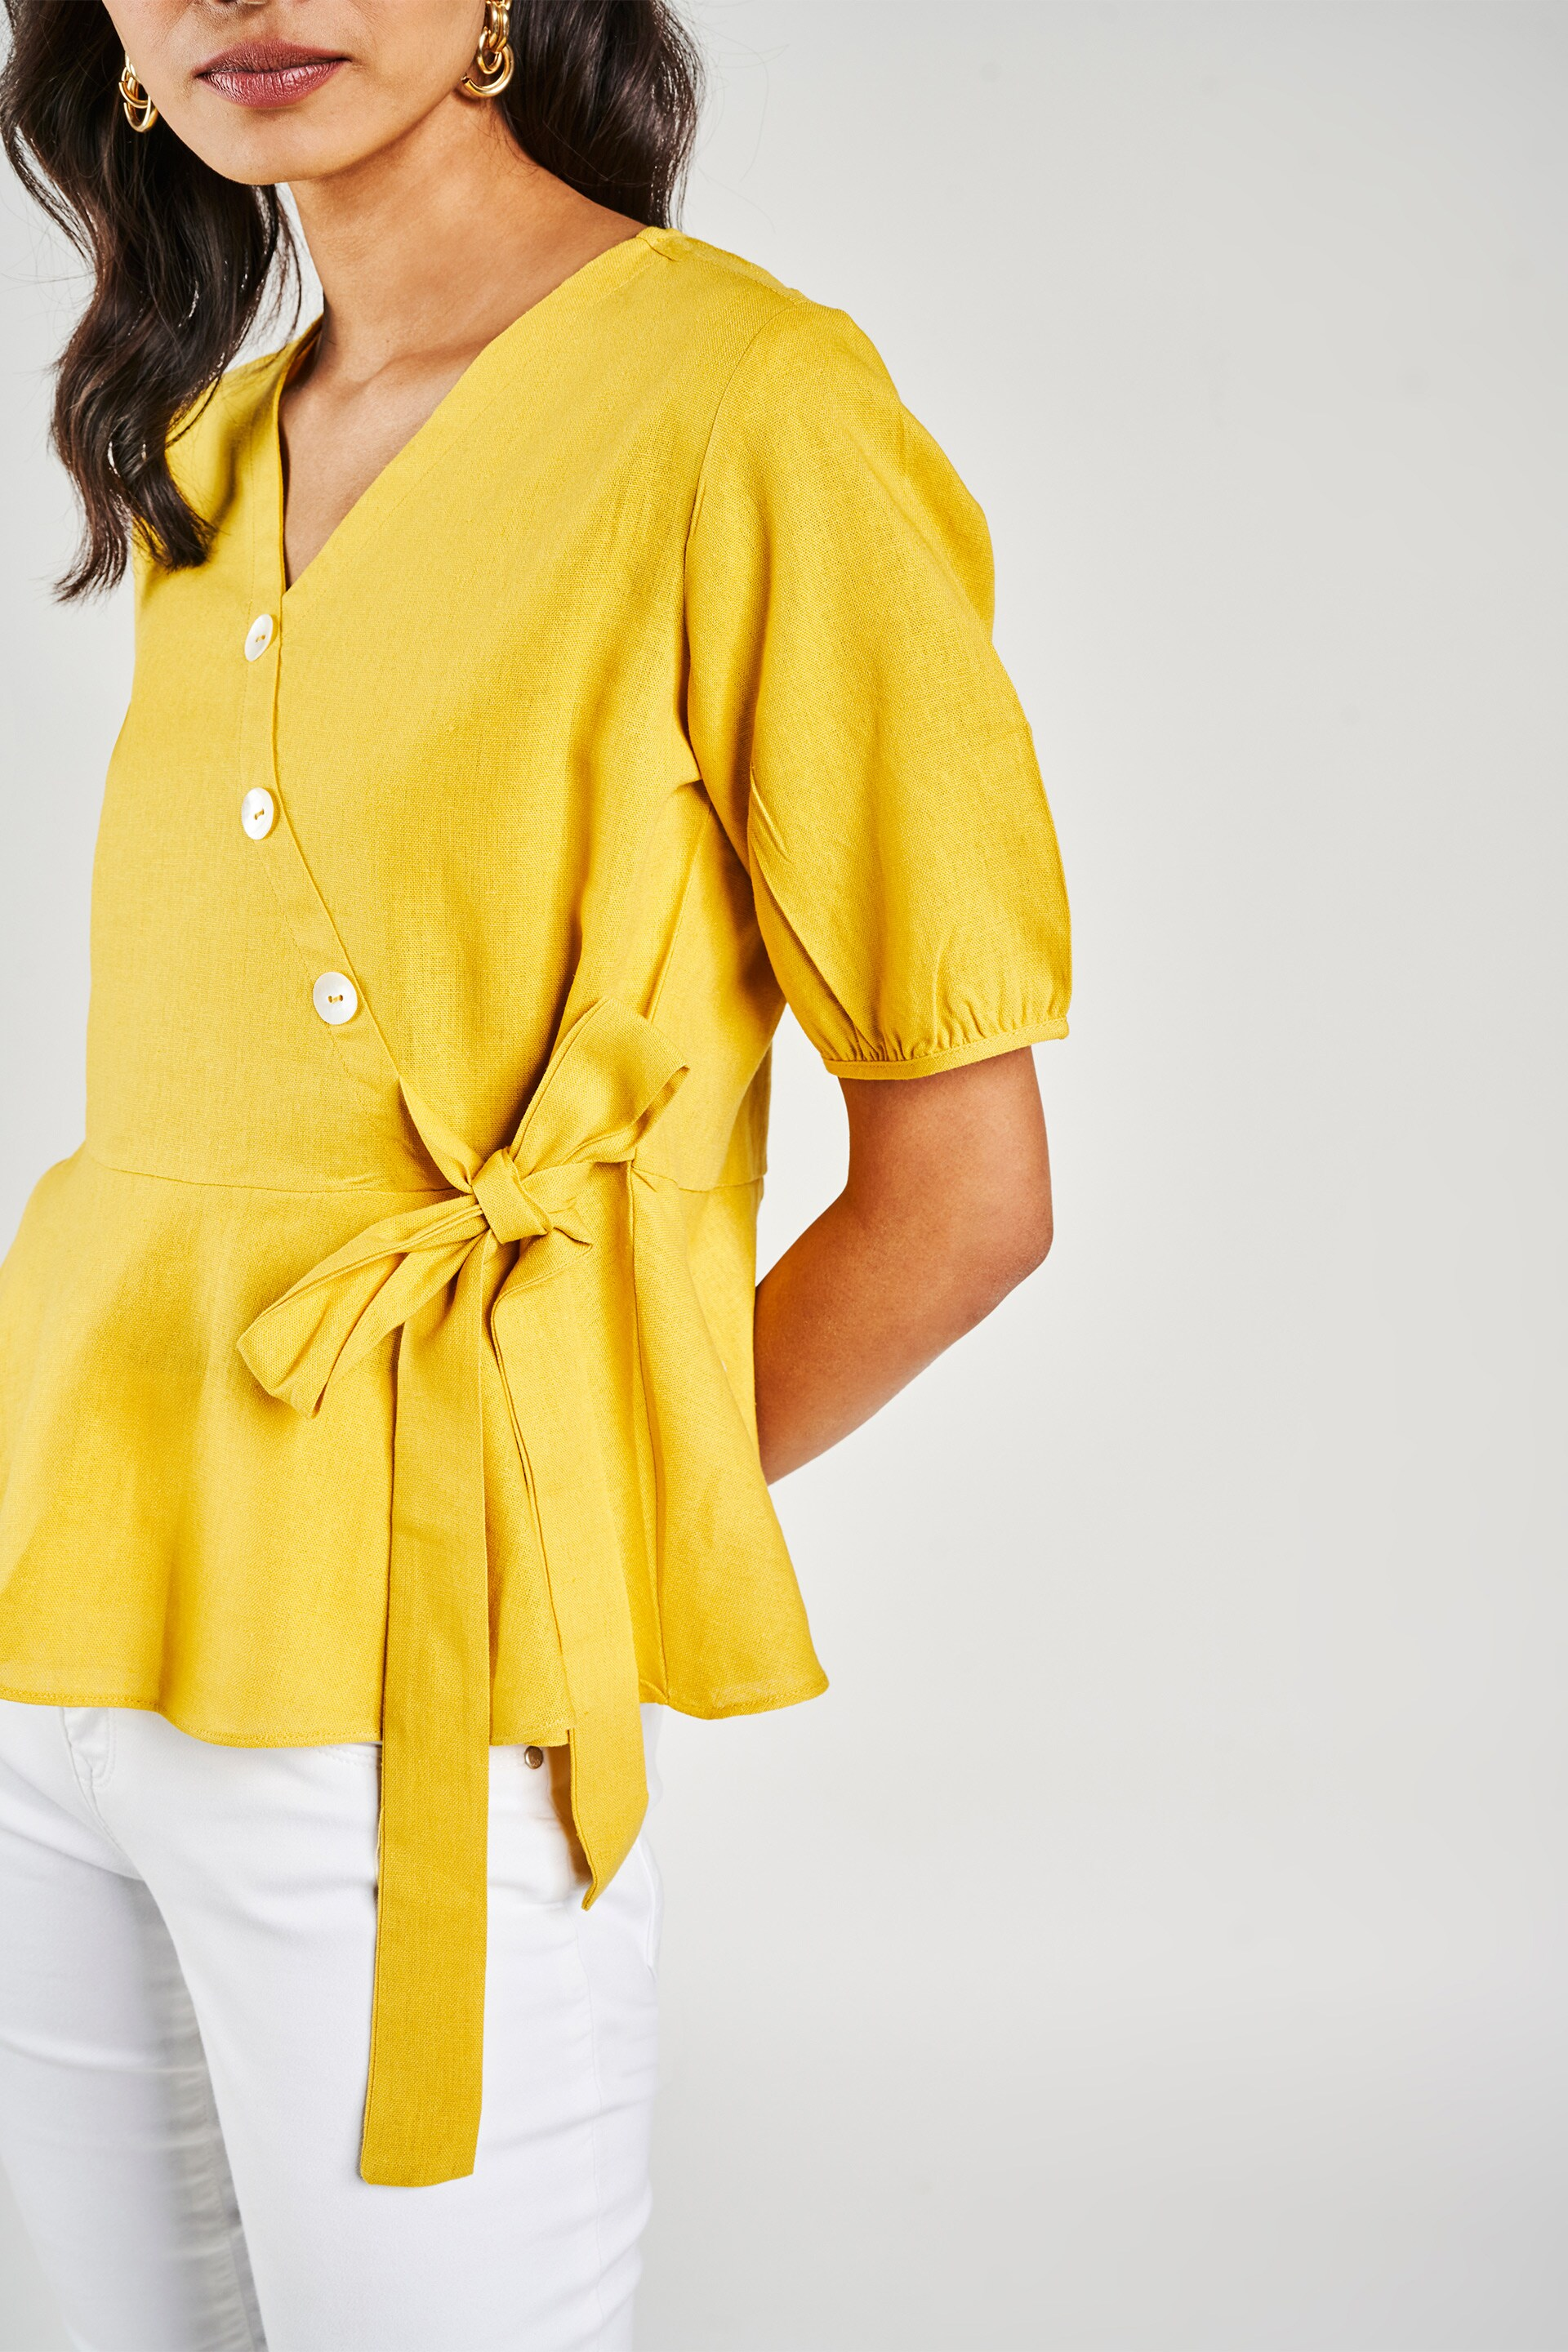 AND | Yellow Solid Peplum Top